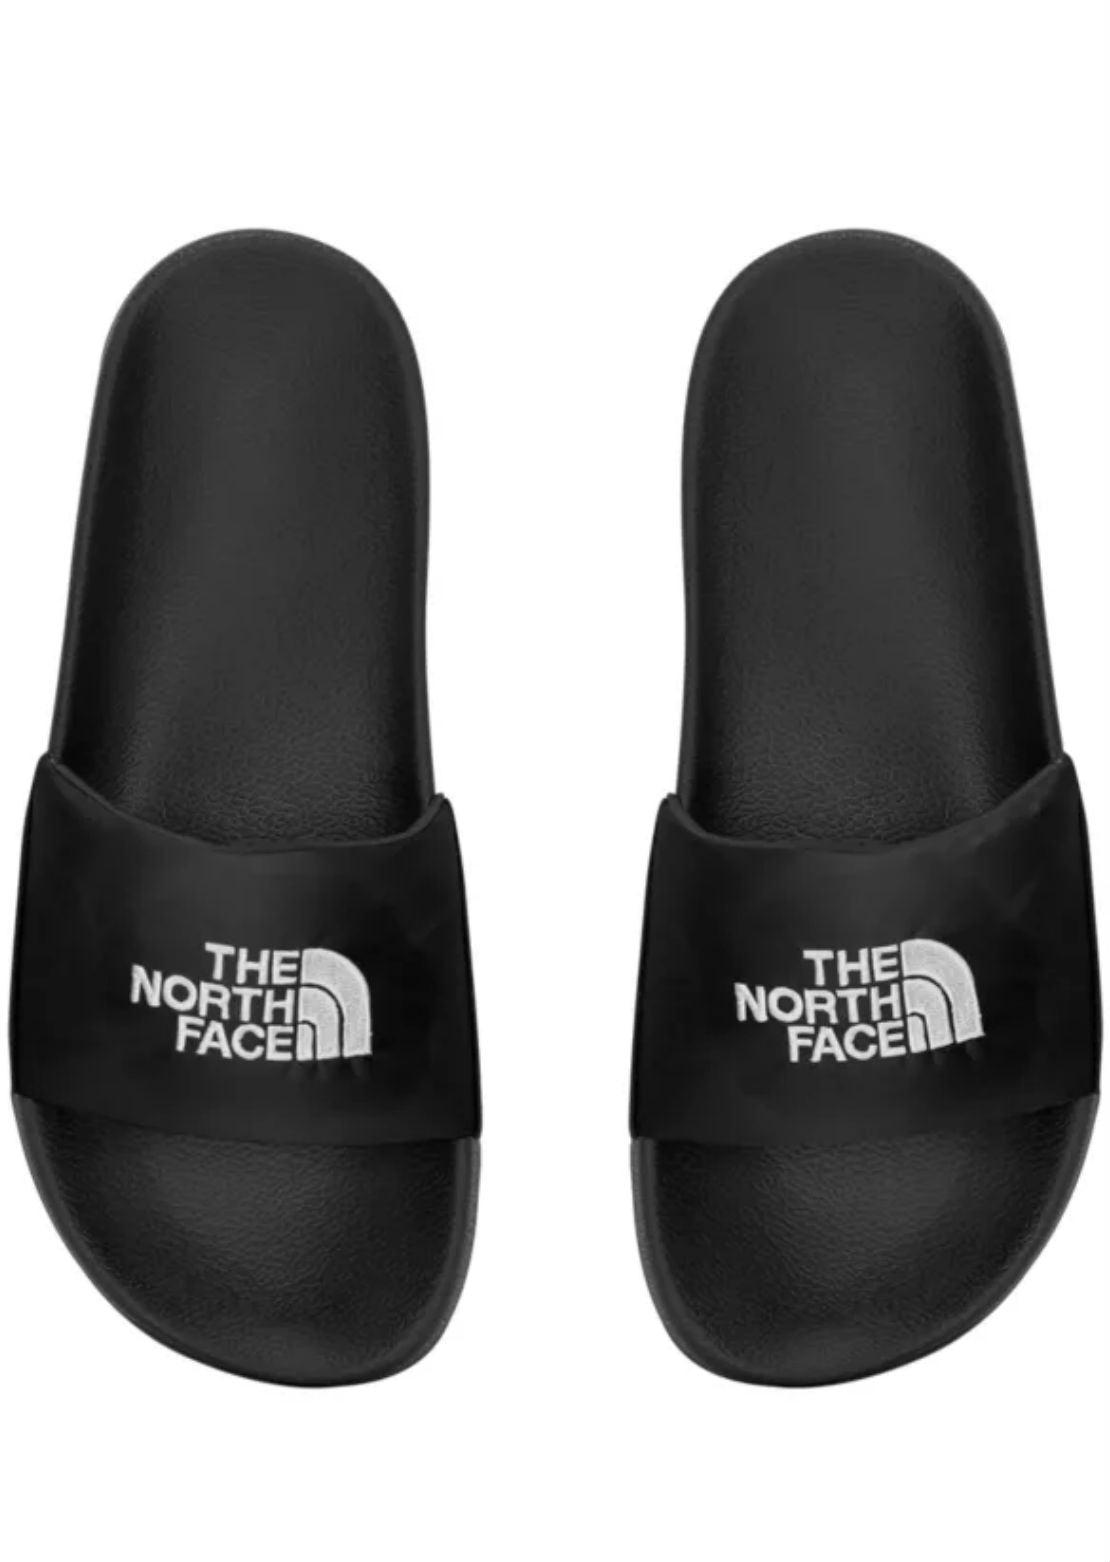 The North Face Women's Nuptse Slide